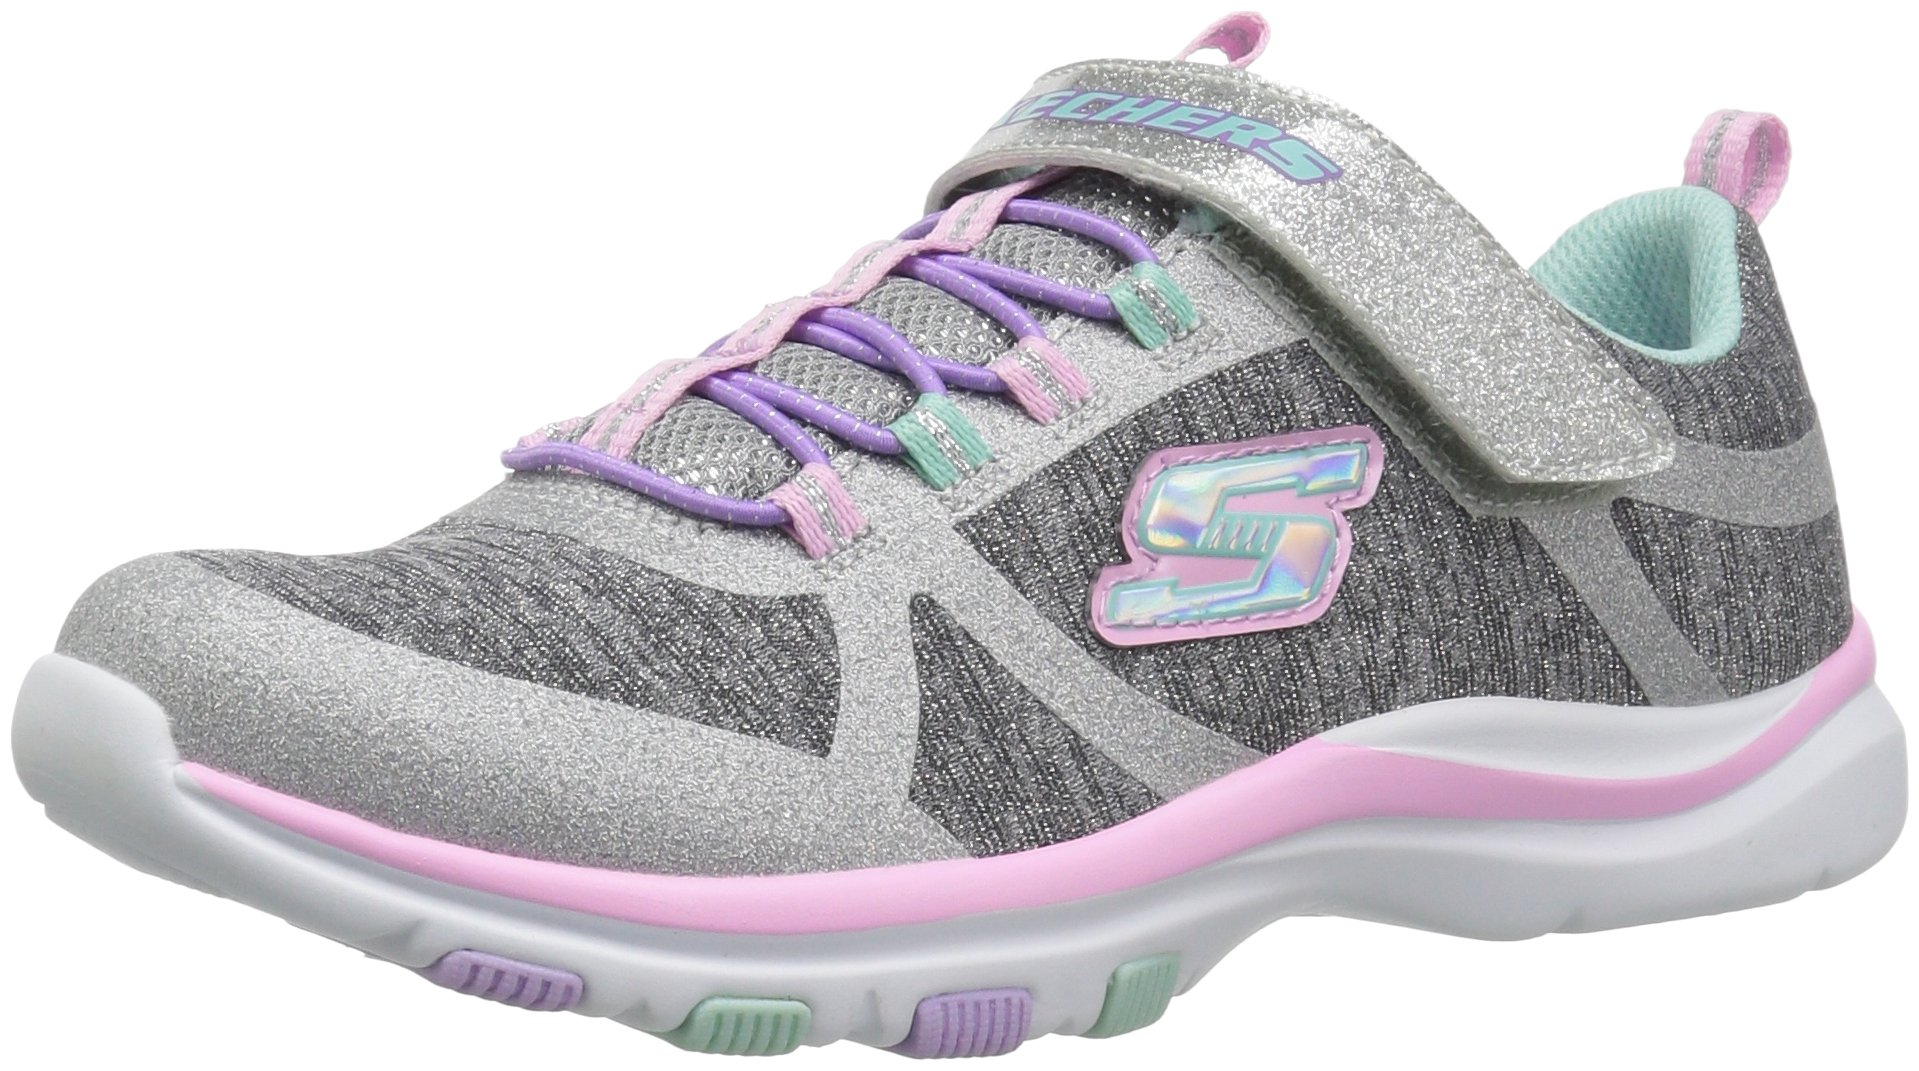 Skechers Kids Girls' Trainer LITE- Jazzy Jumper Sneaker, GYMT, 13 Medium US Little